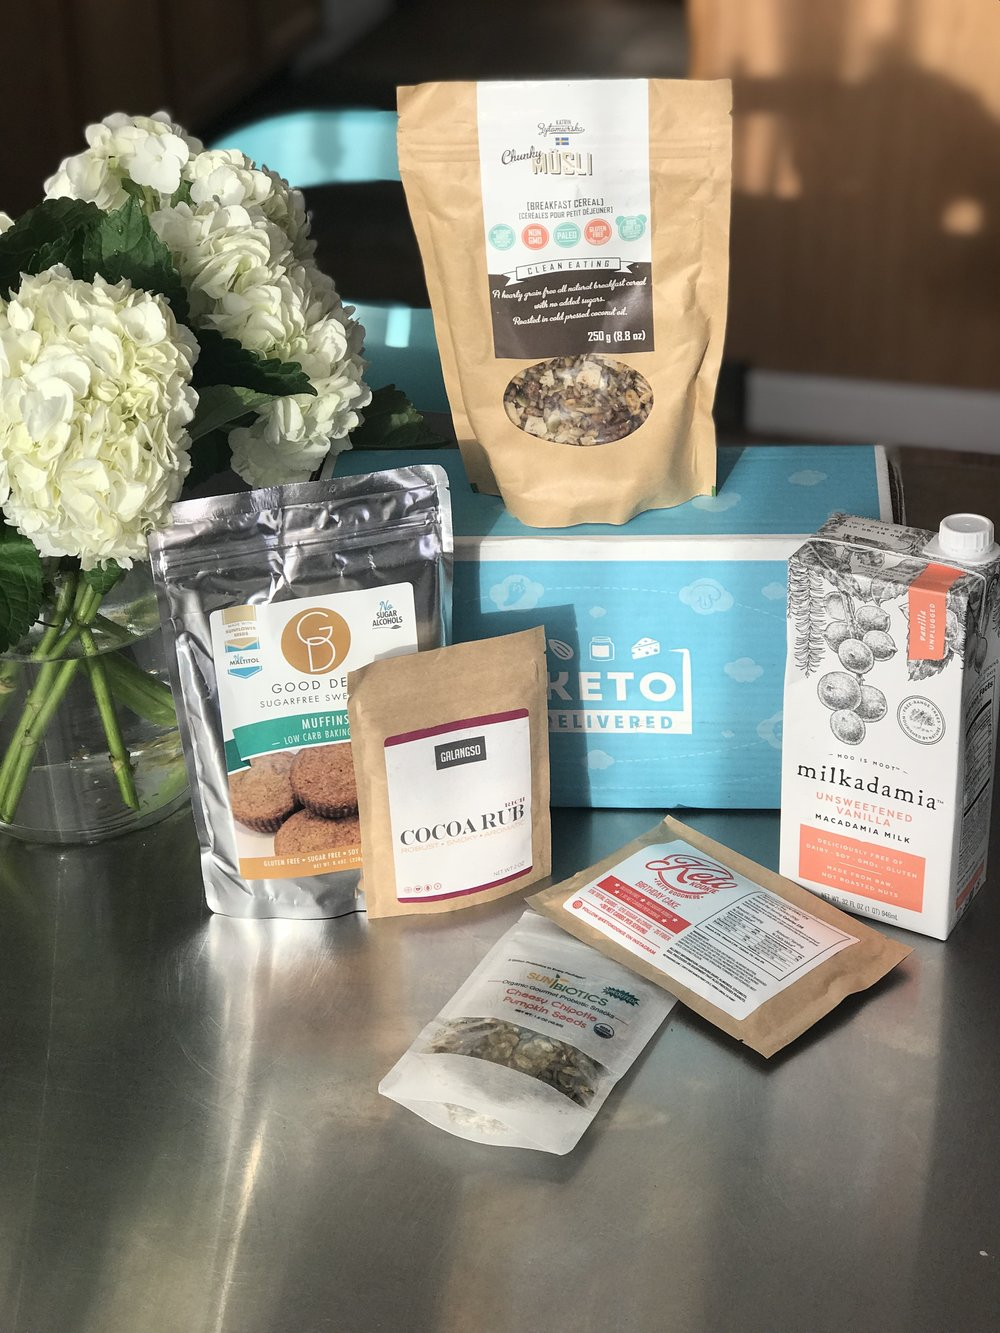 KETO PRODUCT REVIEW: KETO DELIVERED BOX by Jen Fisch via Keto In The City